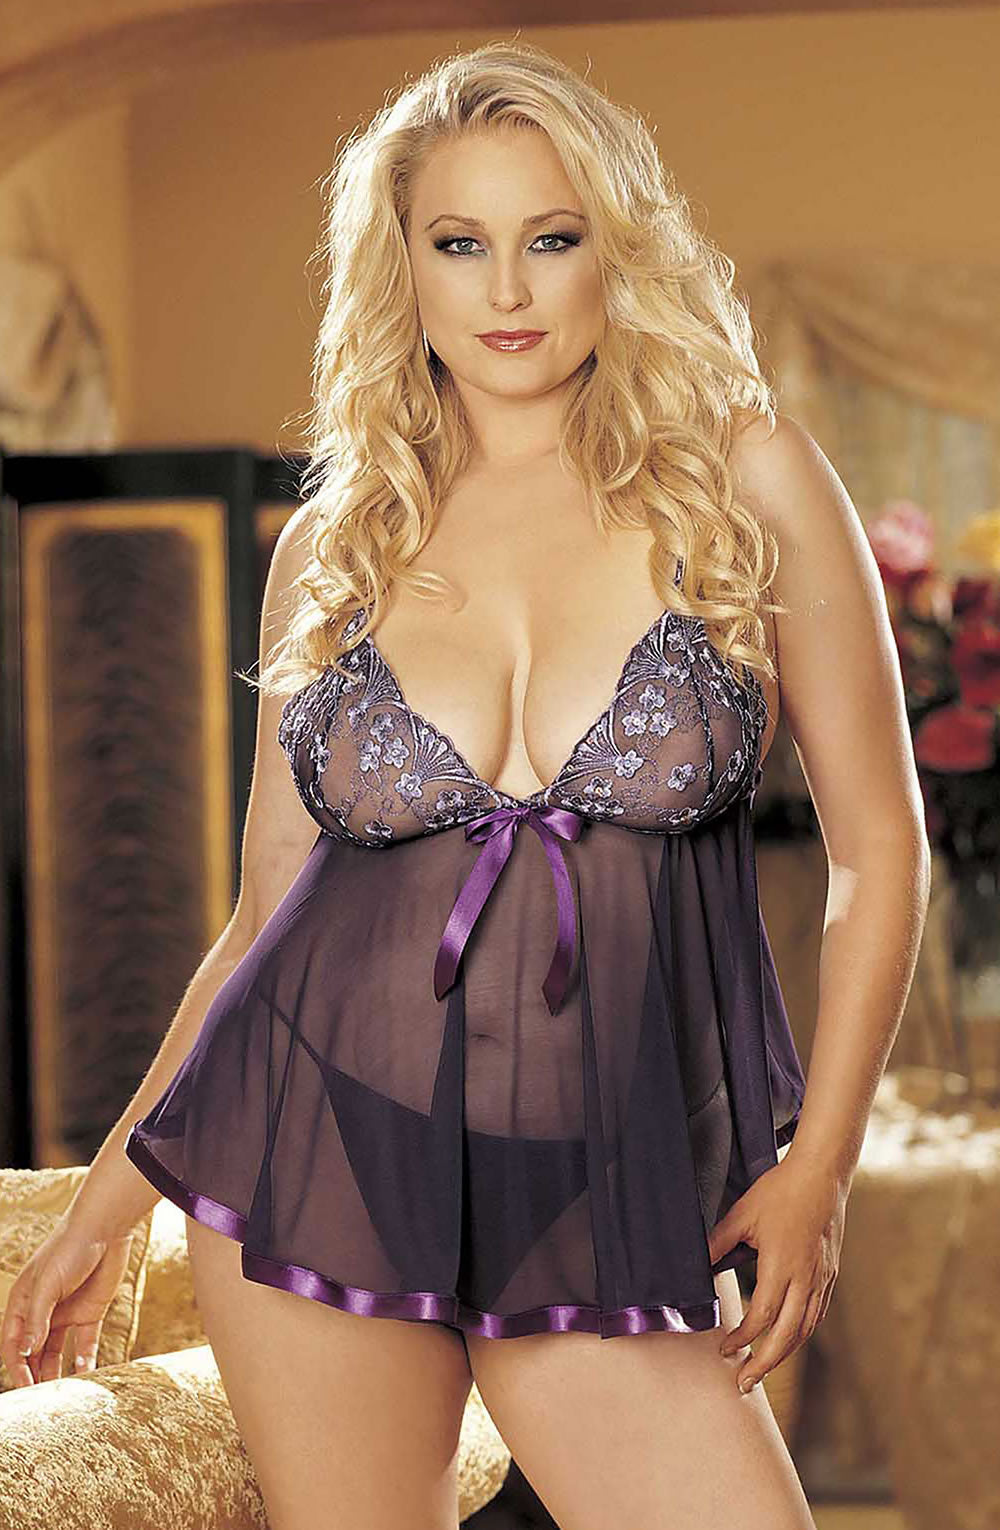 Shirley of Hollywood SoH-HL 96121Q (Plus Size) Pur  Babydolls, Chemises, Hot Lingerie Collection, Lingerie Sets, NEWLY-IMPORTED, Nightwear, Plus Sizes, Shirley of Hollywood - So Luxe Lingerie